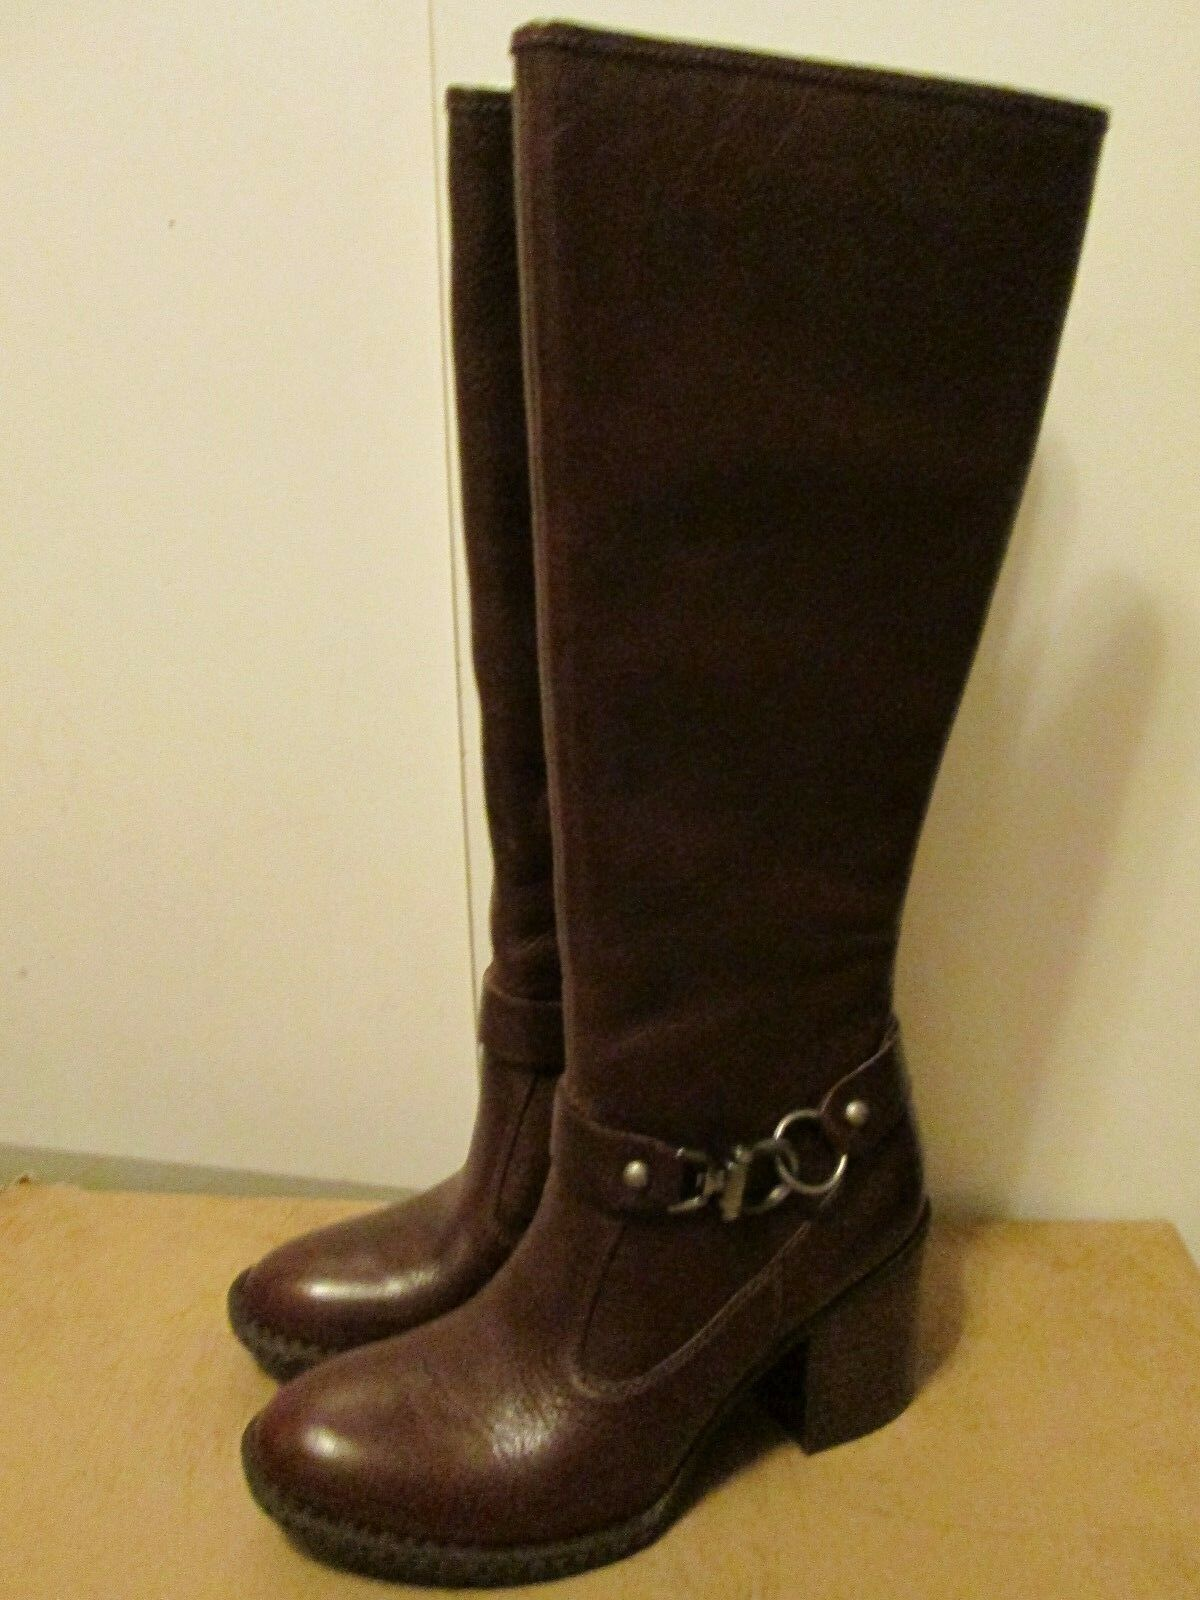 Born Hand Crafted Jacey Cinnamon Brown Leather Knee High High Heel Boots 8.5 NEW